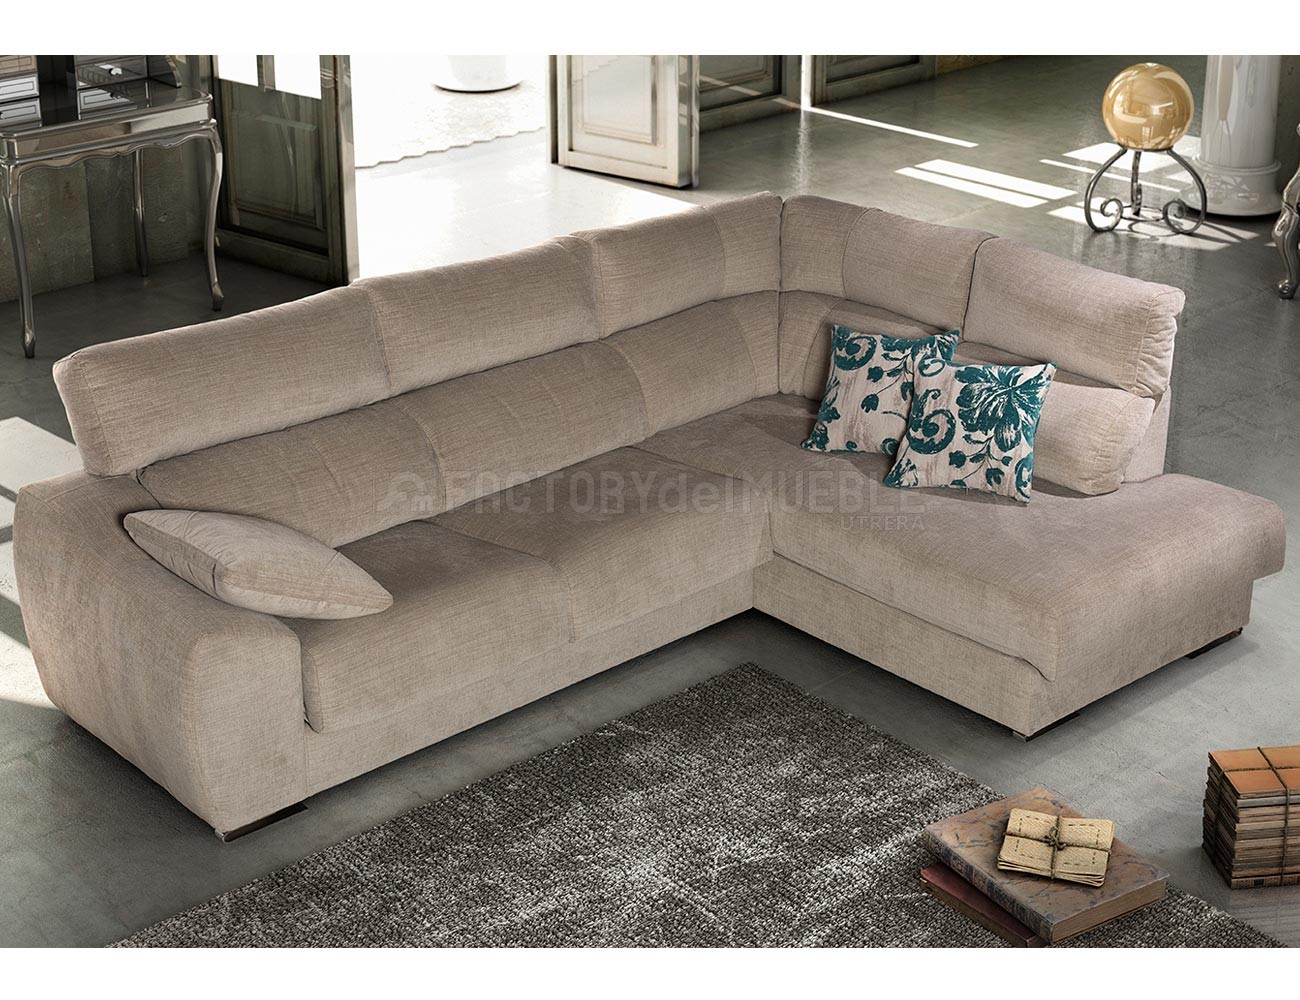 Sofa chaiselongue rincon moderno forma17